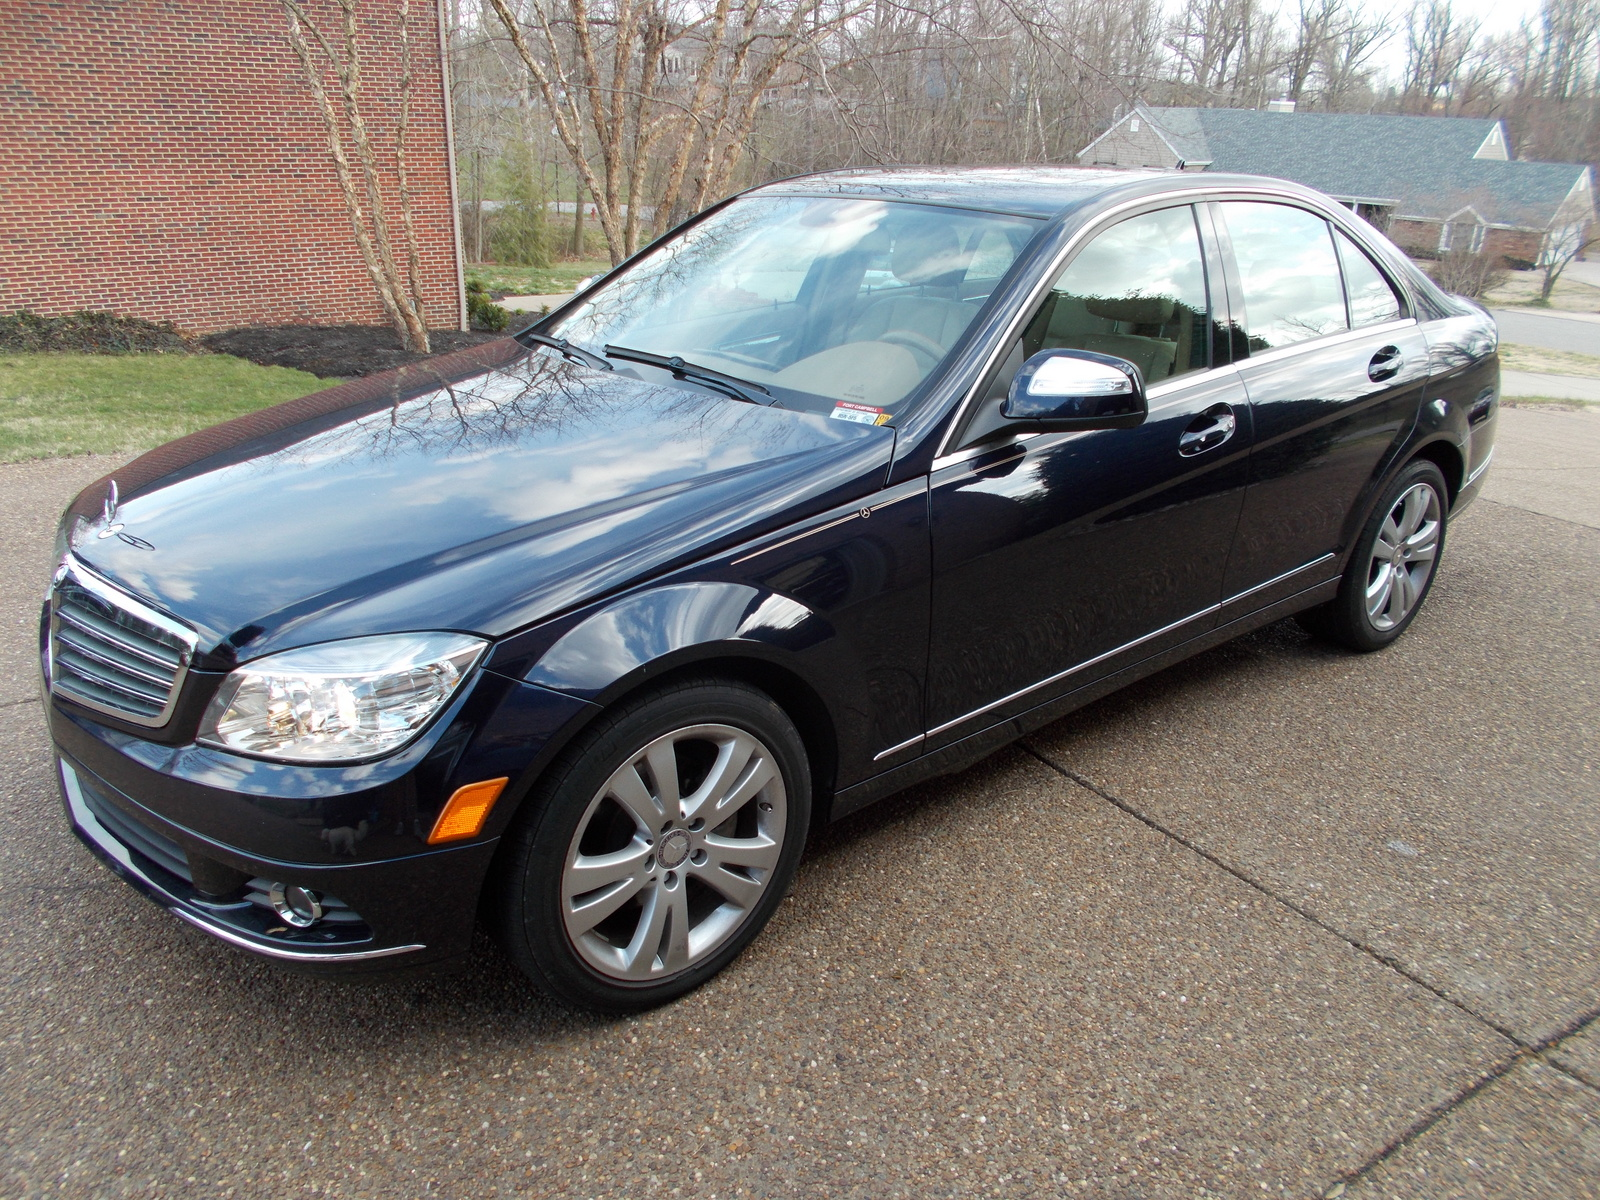 2008 mercedes benz c class c300 luxury for sale cargurus for Mercedes benz c class 2008 for sale